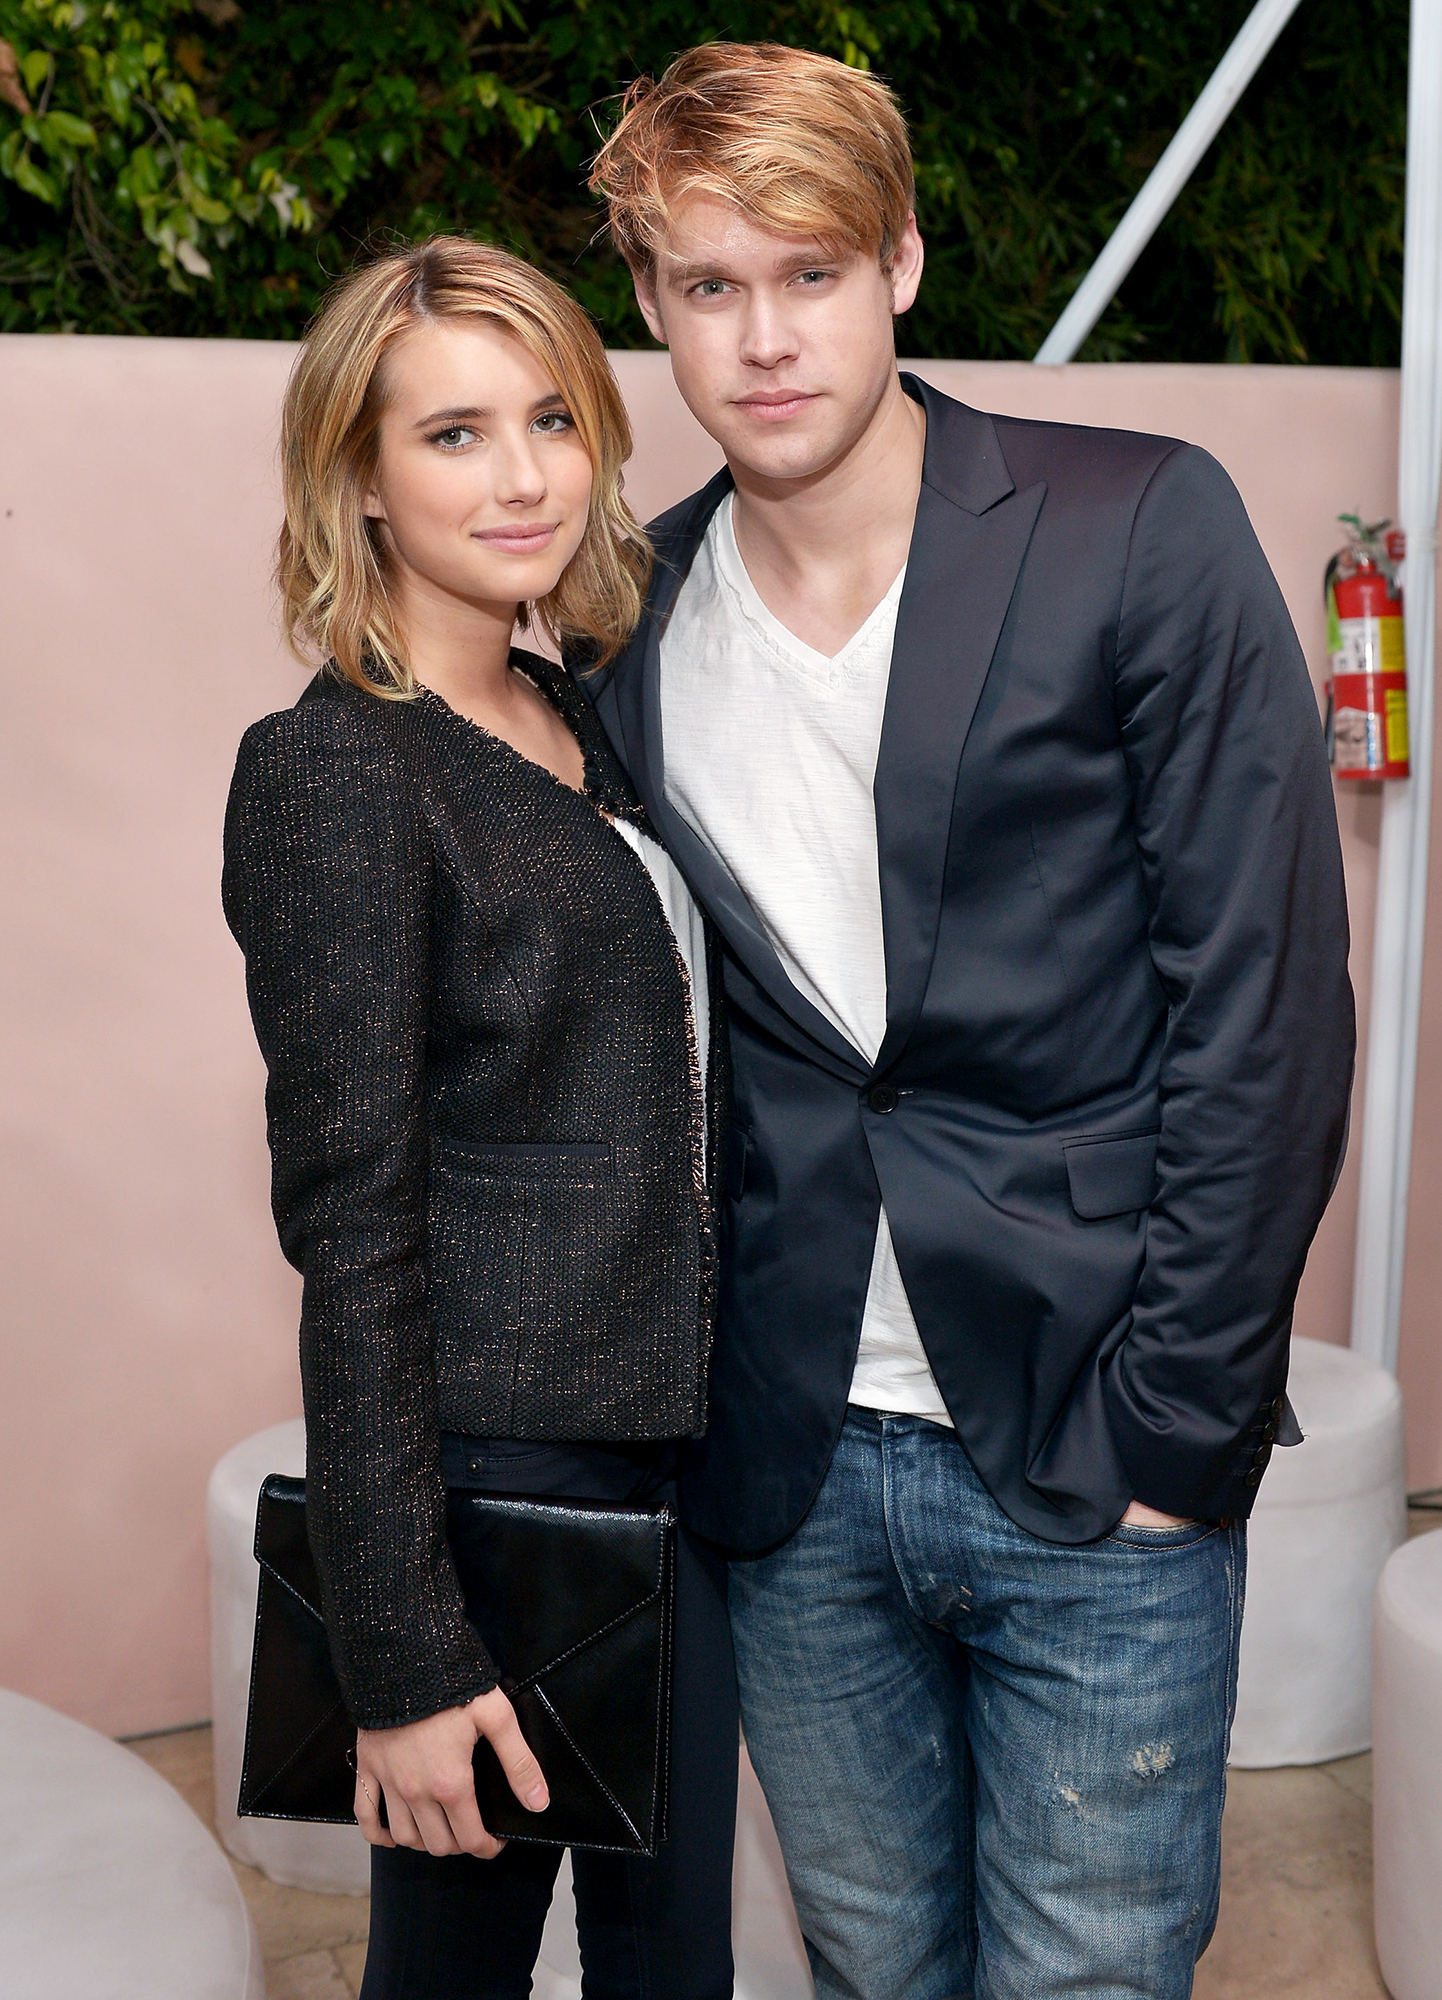 Emma Roberts' Dating History - The Glee alum and the Aquamarine star were first linked in 2011, but called it quits after several months of dating in early 2012. The twosome rekindled their relationship in April 2012 after they were spotted packing on the PDA at Coachella.